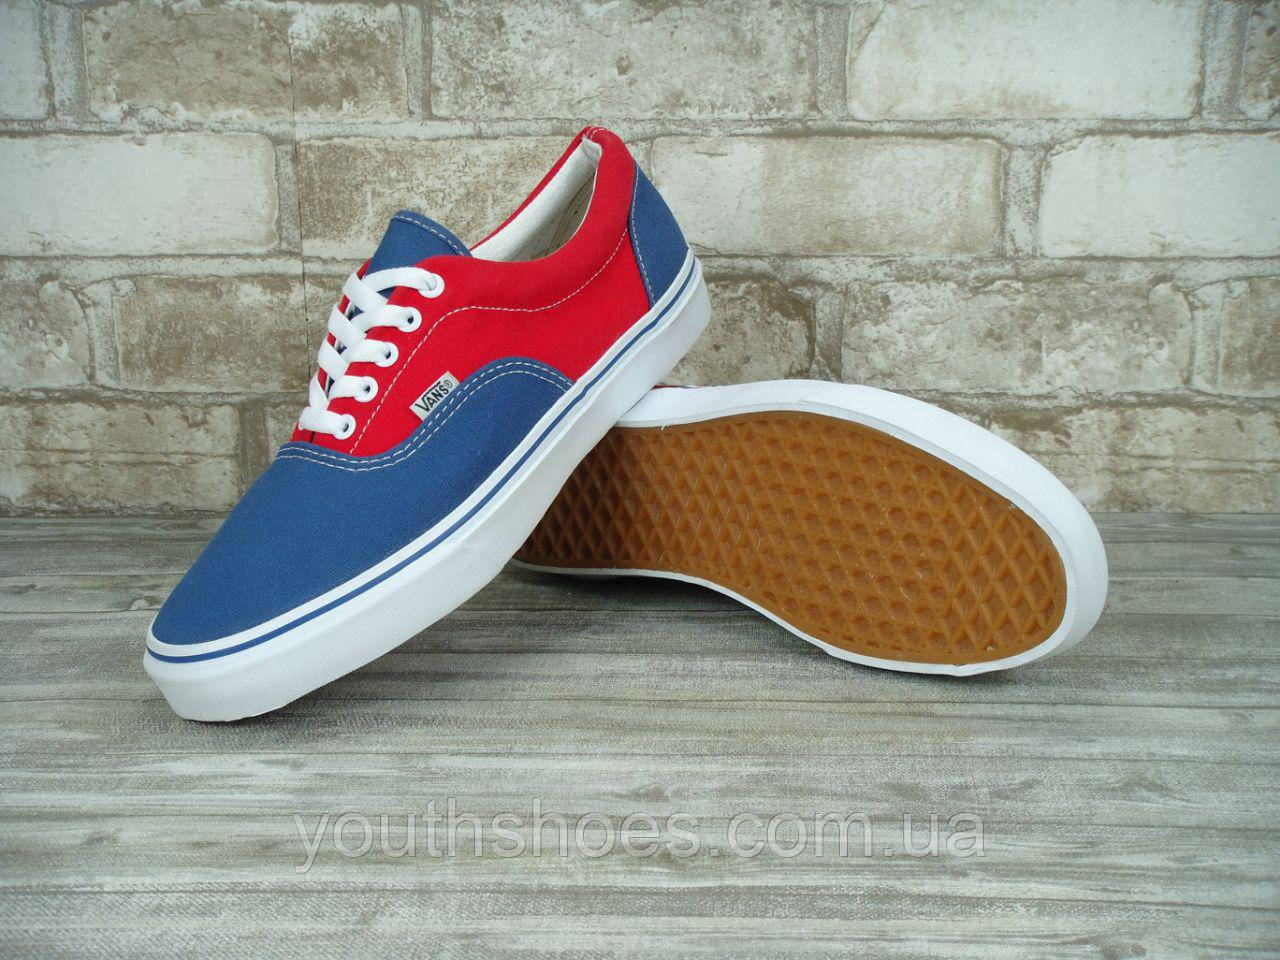 "Кеды текстильные мужские Vans  Era Red/Blue ""Красно-синие"" р. 9-10 (42-44), фото 1"